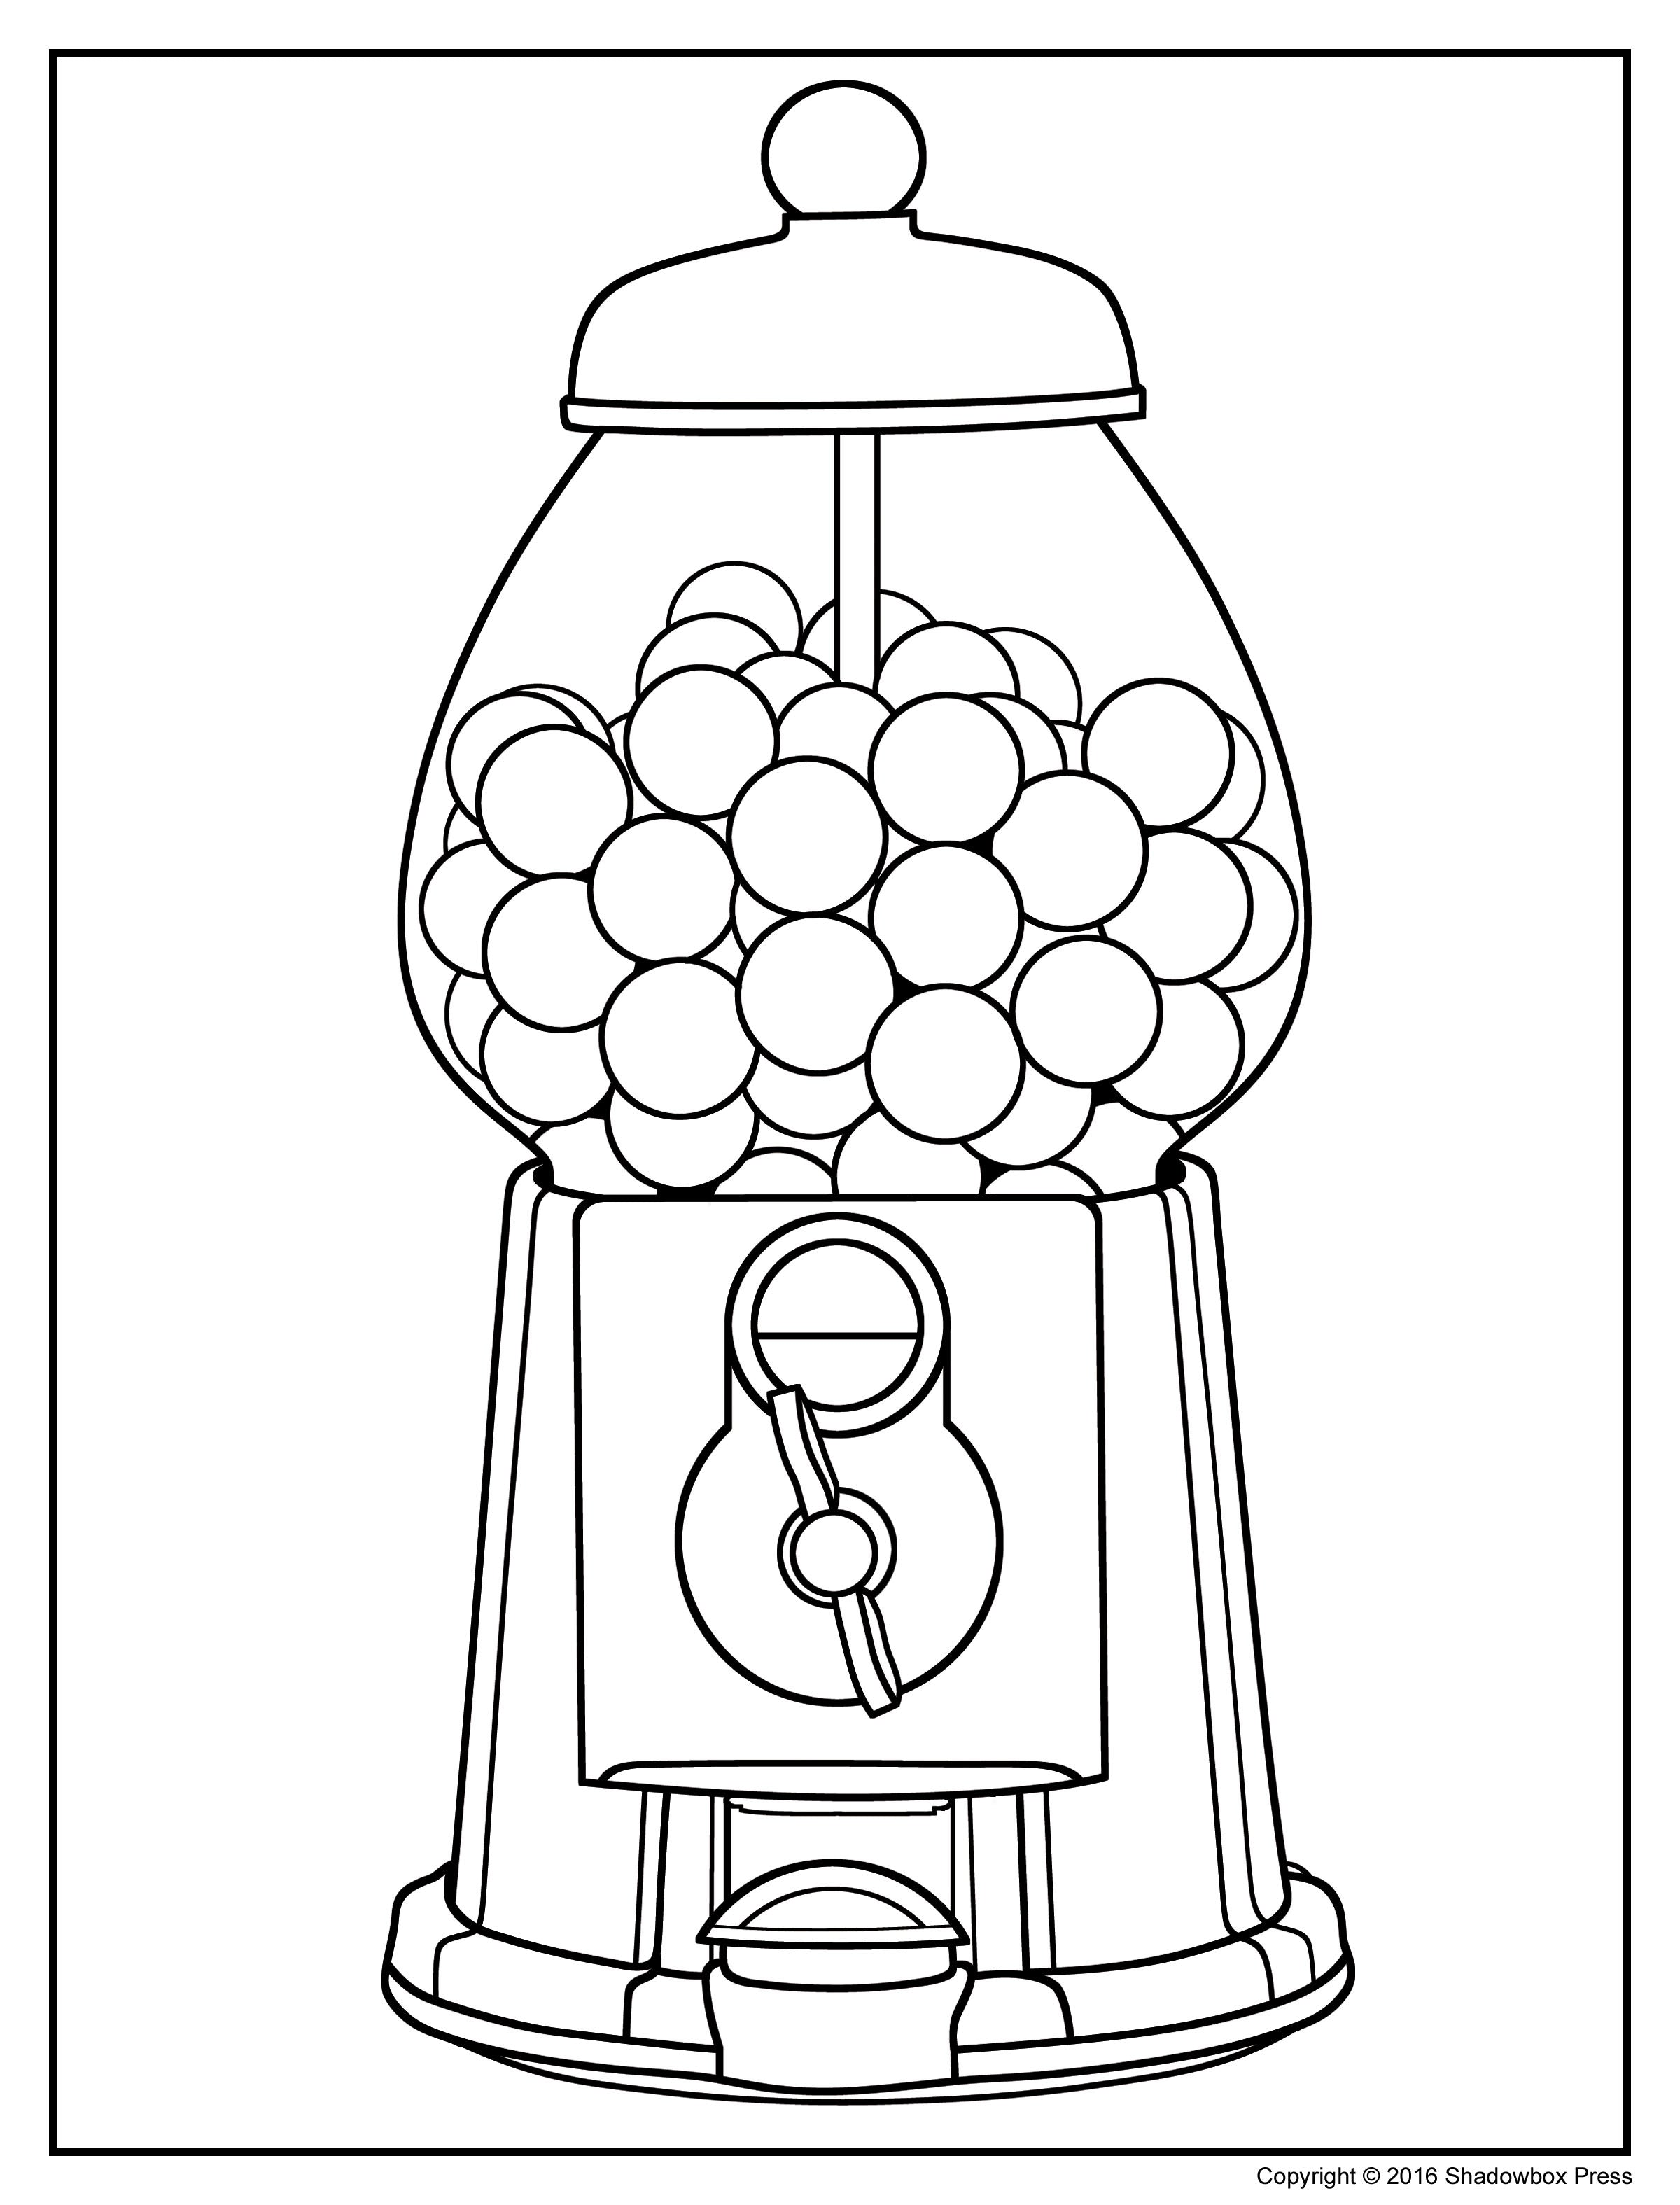 girl with lollipop coloring page girl with lollipop photograph - Download Coloring Pages For Adults